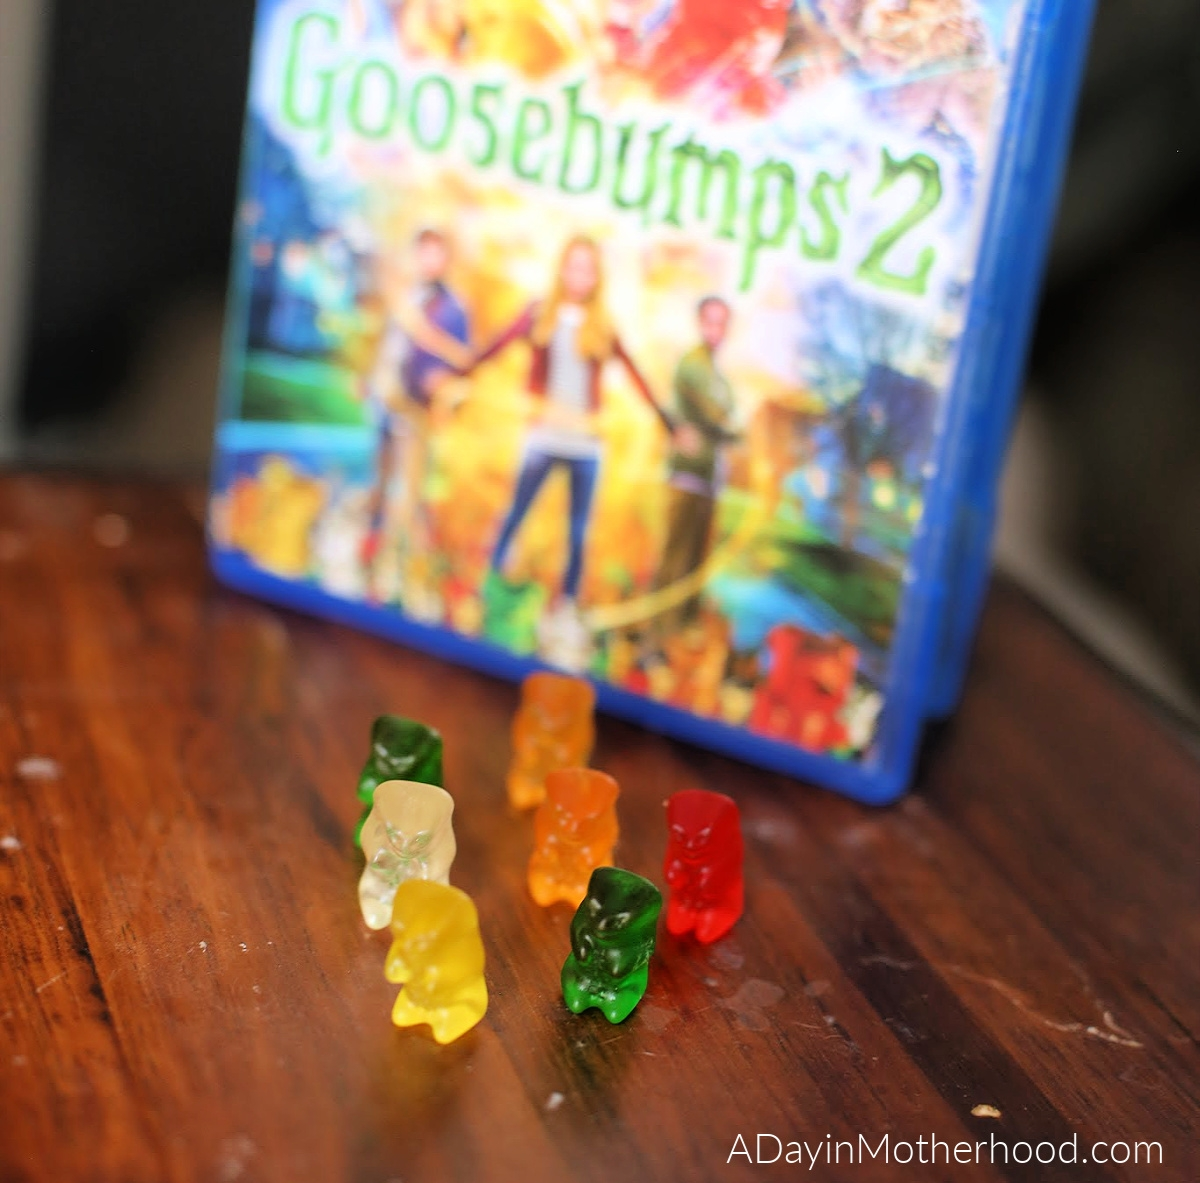 Goosebumps 2 Movie Night: Mini Ghost Cupcakes, Vortex Cookies & a Scavenger Hunt & gummy bears